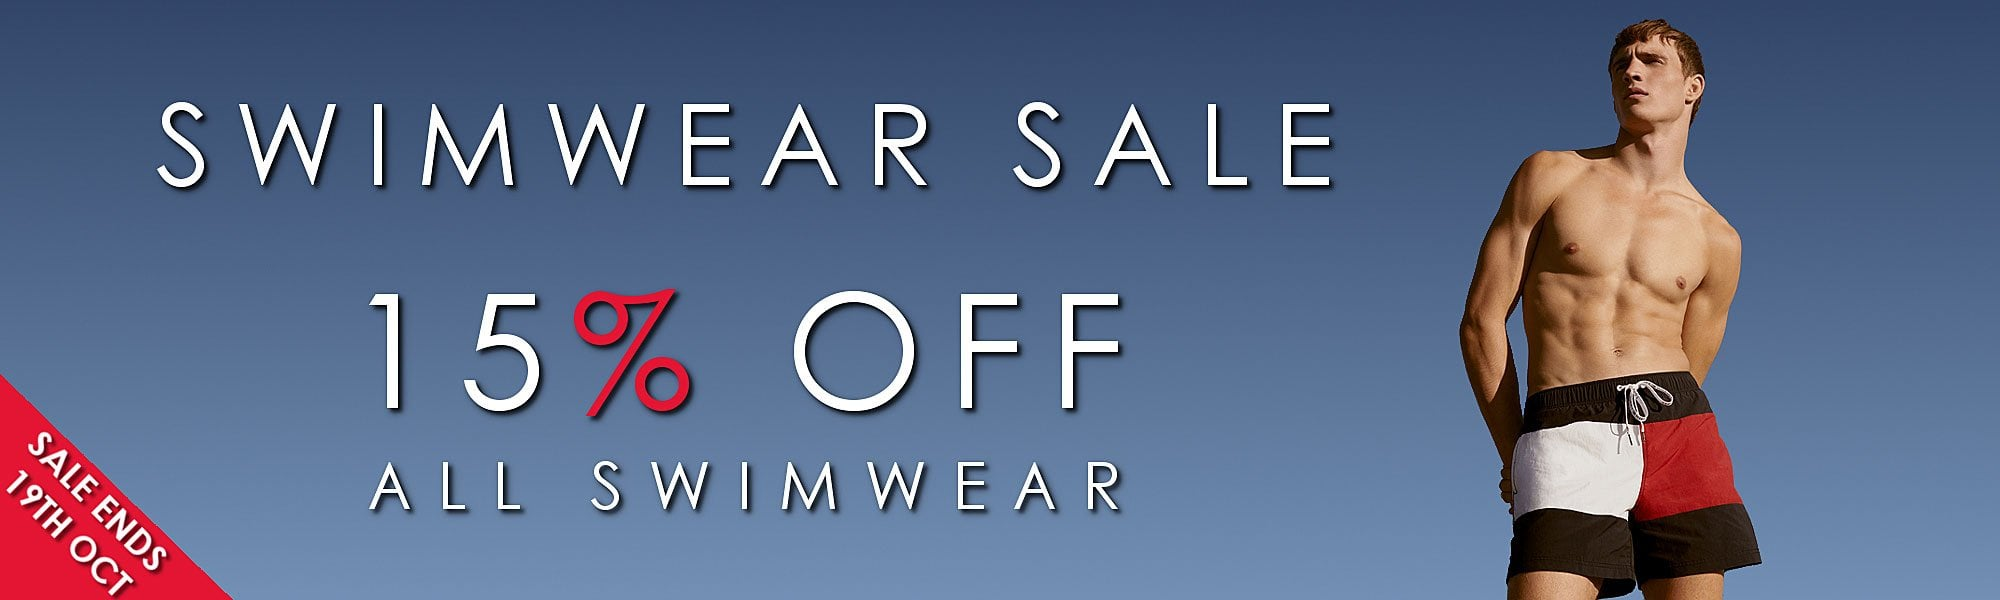 15% OFF ALL SWIMWEAR